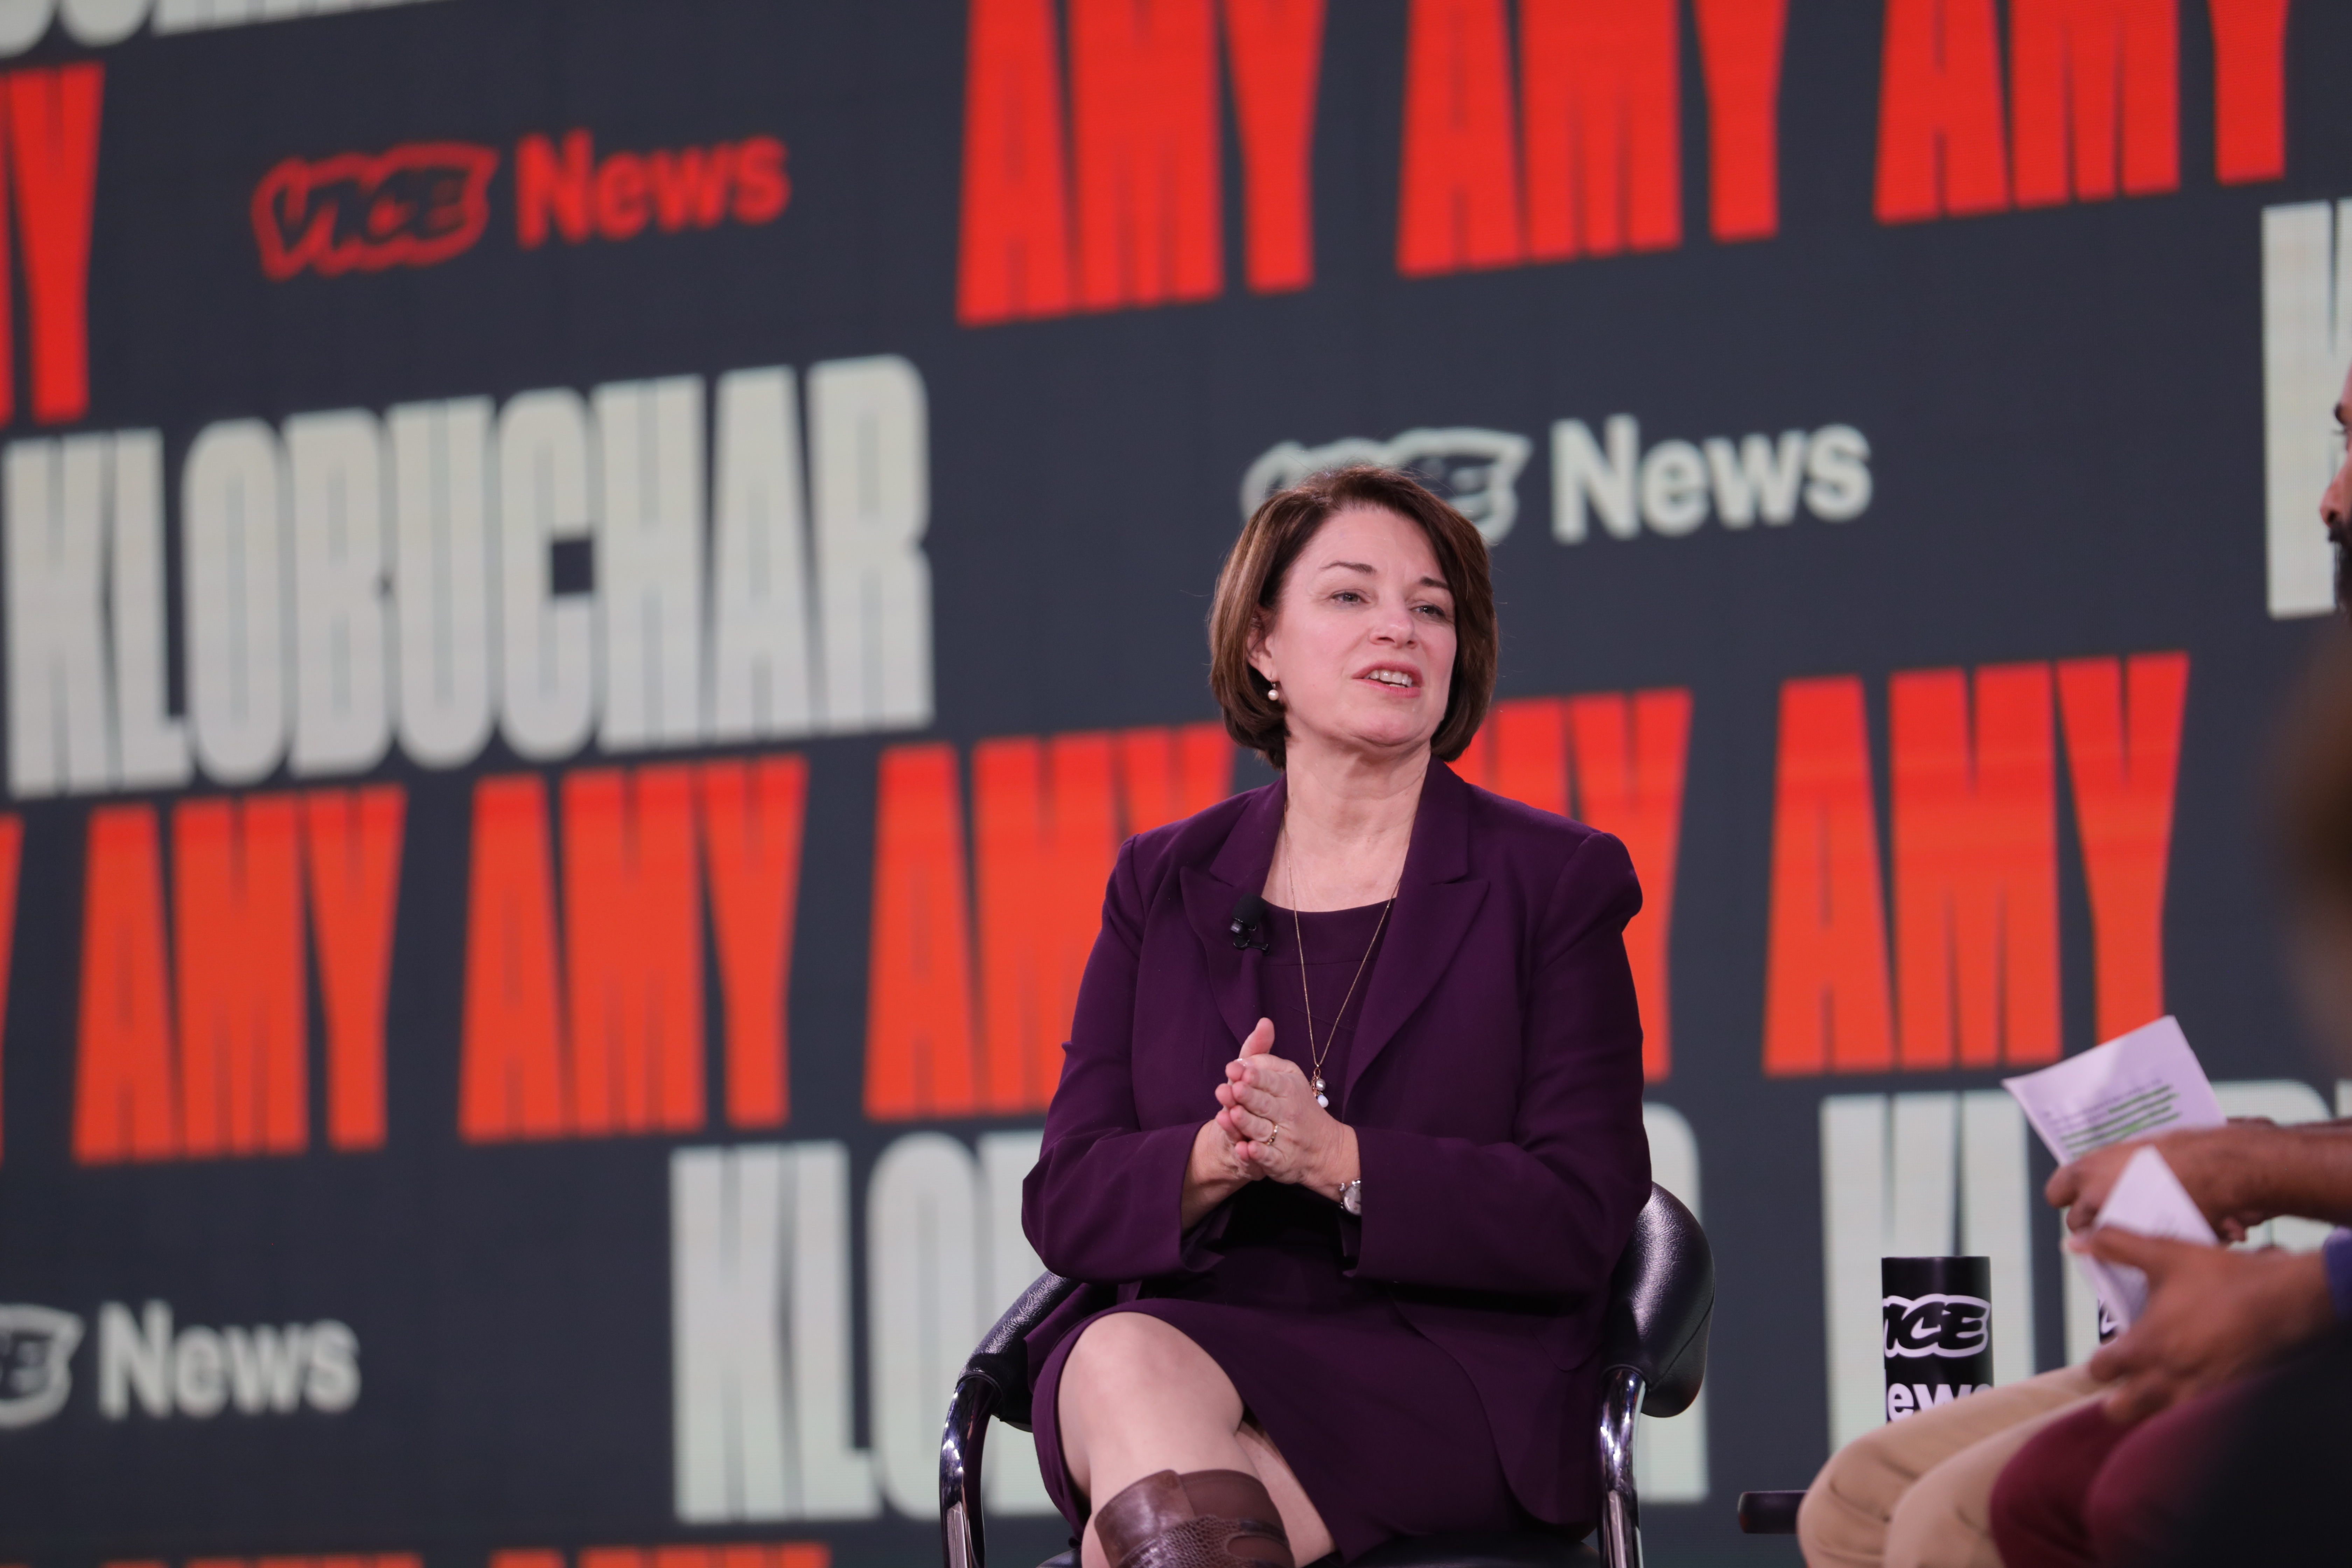 Amy Klobuchar Was Asked If She Was the Kind of 'White Moderate' MLK Called a 'Stumbling Block' to Freedom. Here's How She Replied. - vice